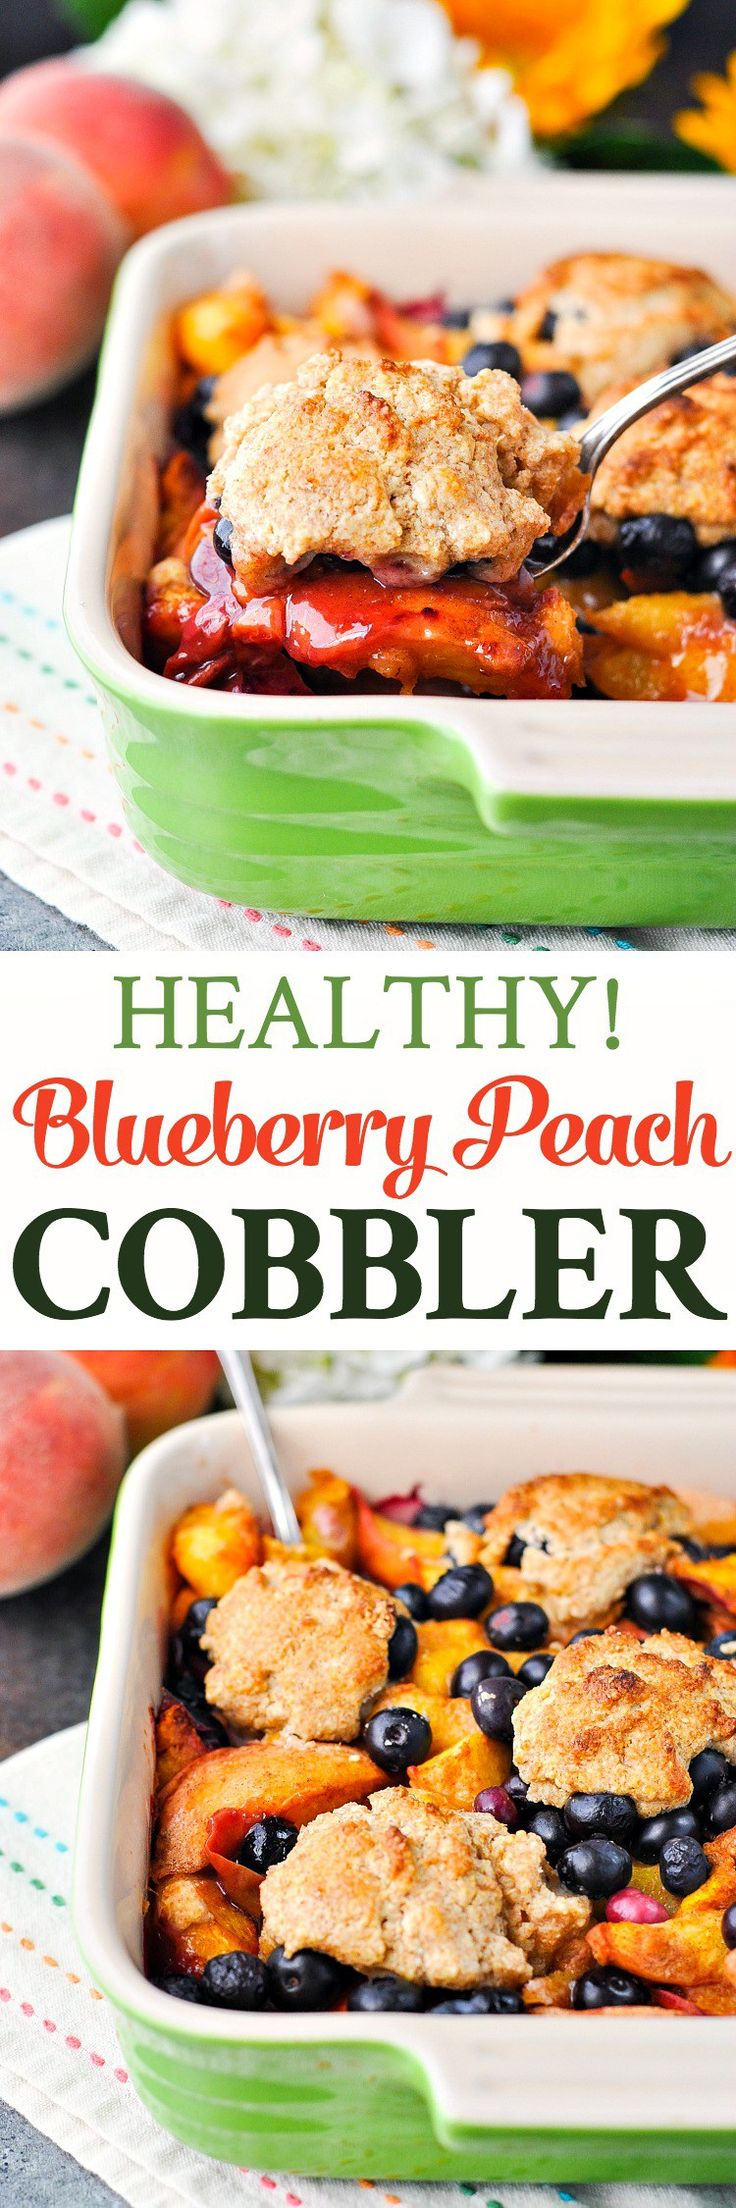 Healthy Blueberry Peach Cobbler + Our Week in Meals #32! - The Seasoned Mom